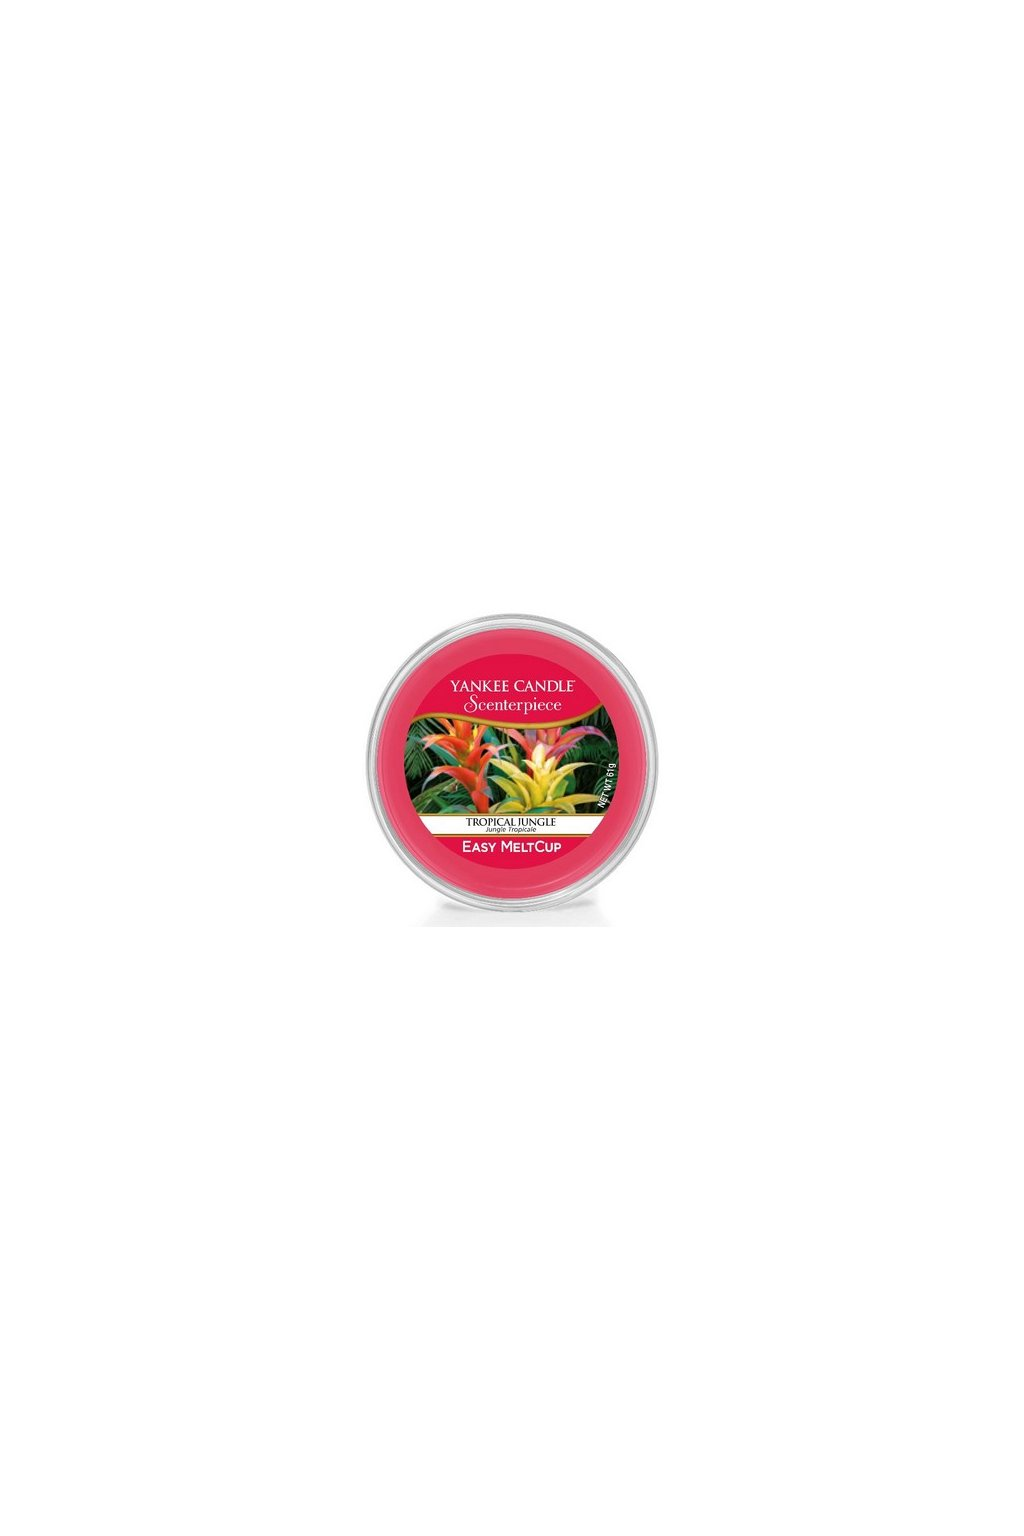 Yankee Canle Scenterpiece Meltcup Vosk Tropical Jungle